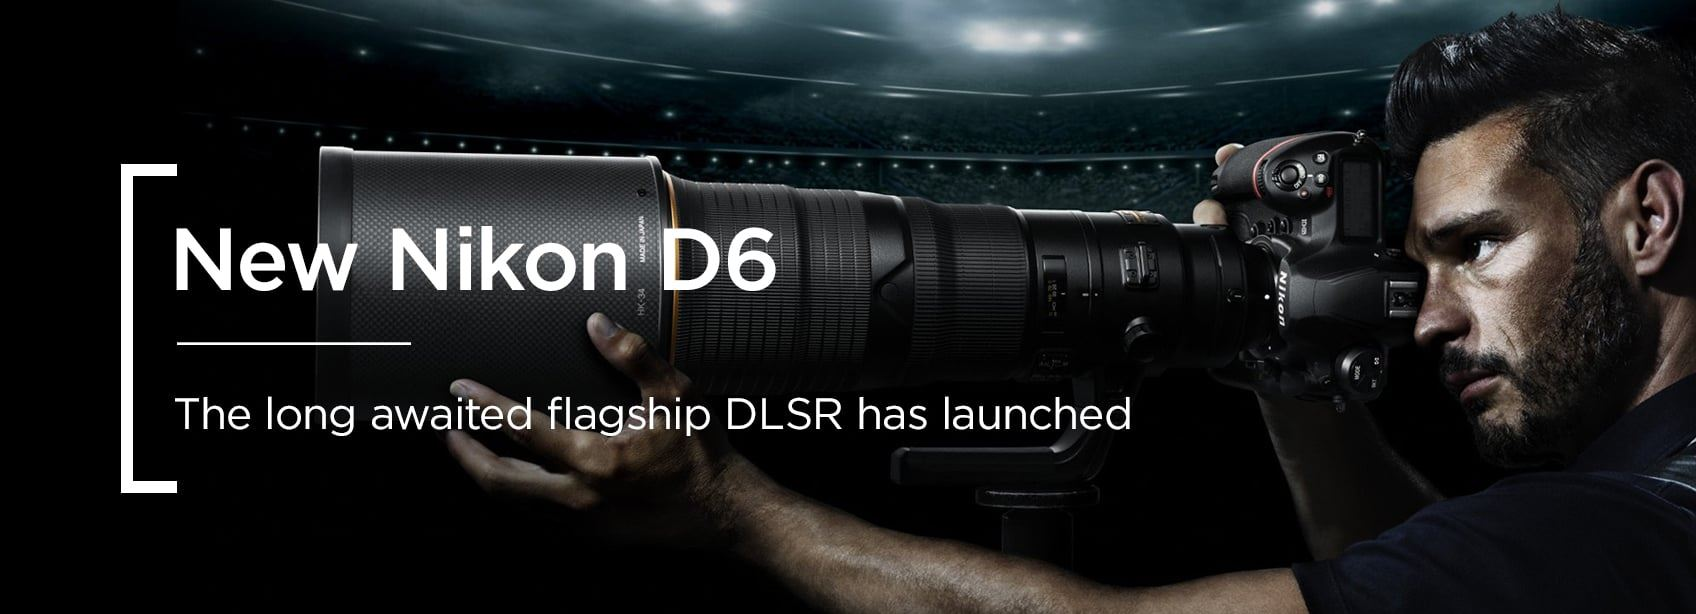 Nikon D6 DSLR - Just launched